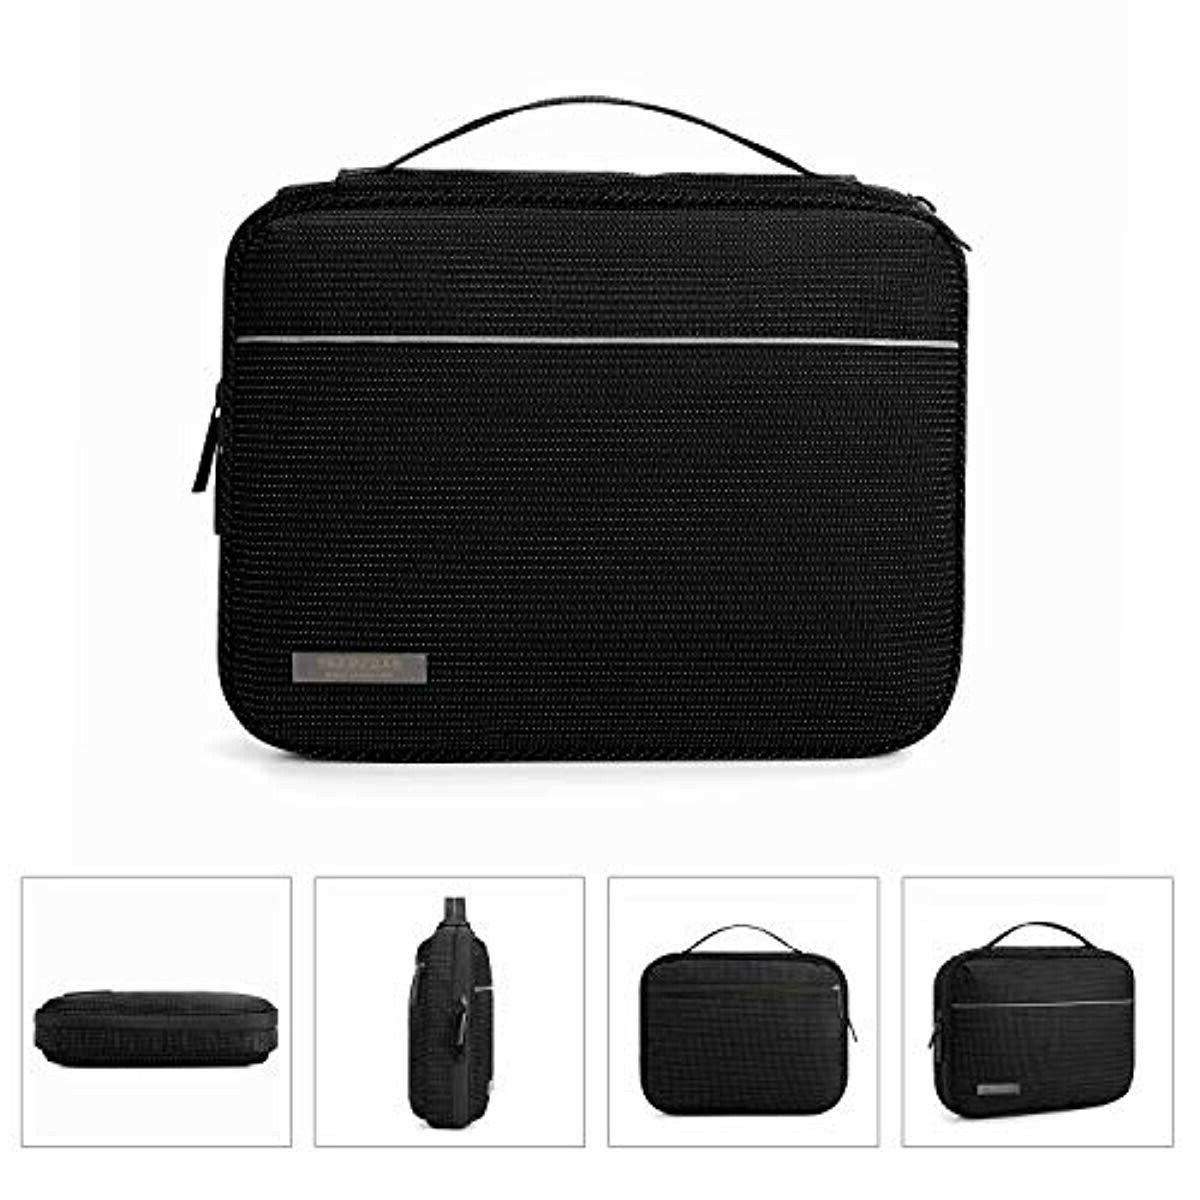 BAGSMART Travel Electronic Cases Accessories Storage Bag